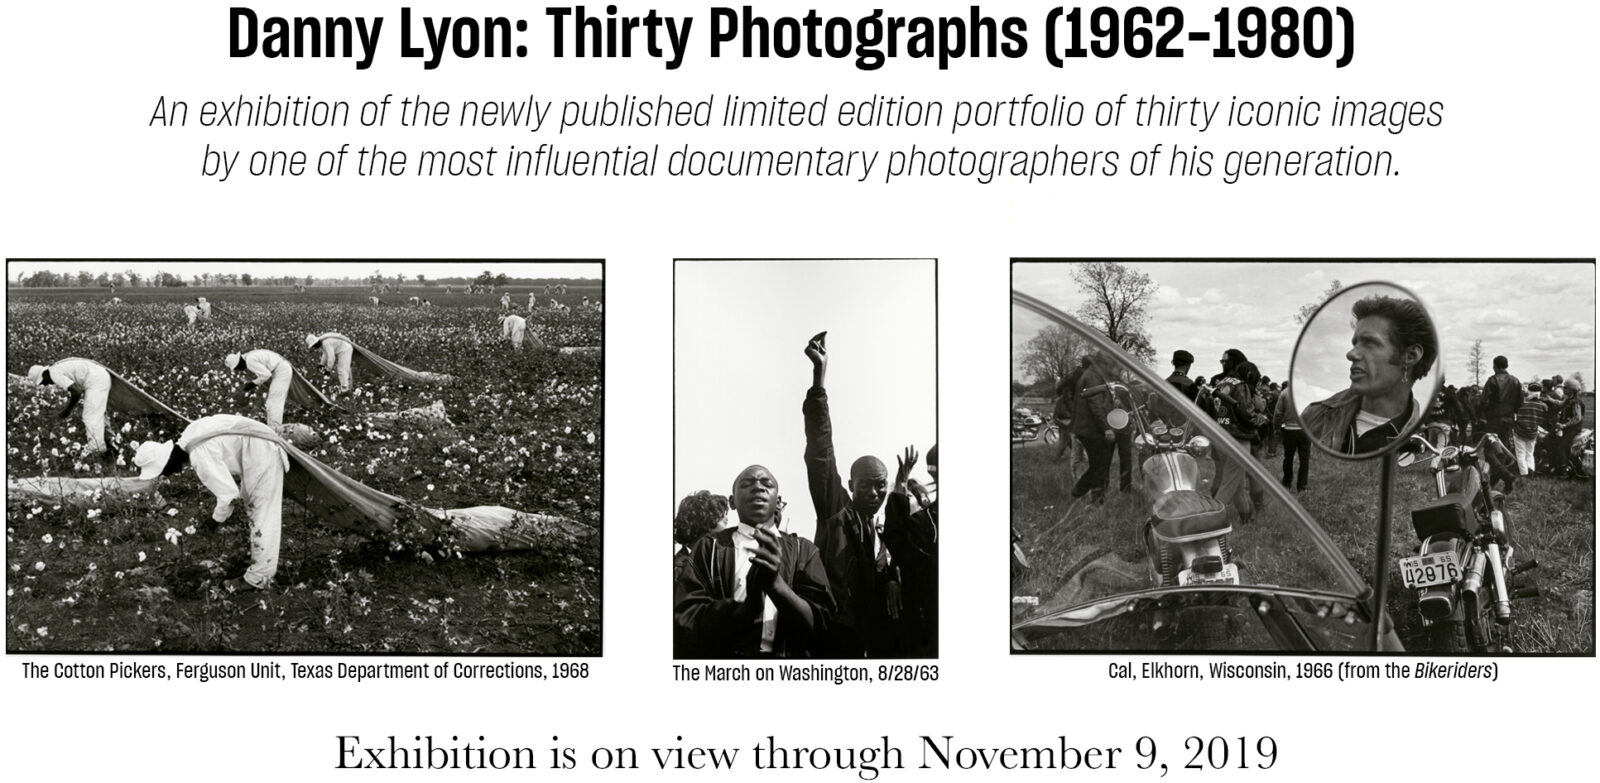 show card for danny lyon's exhibition and on view through November 9, 2019